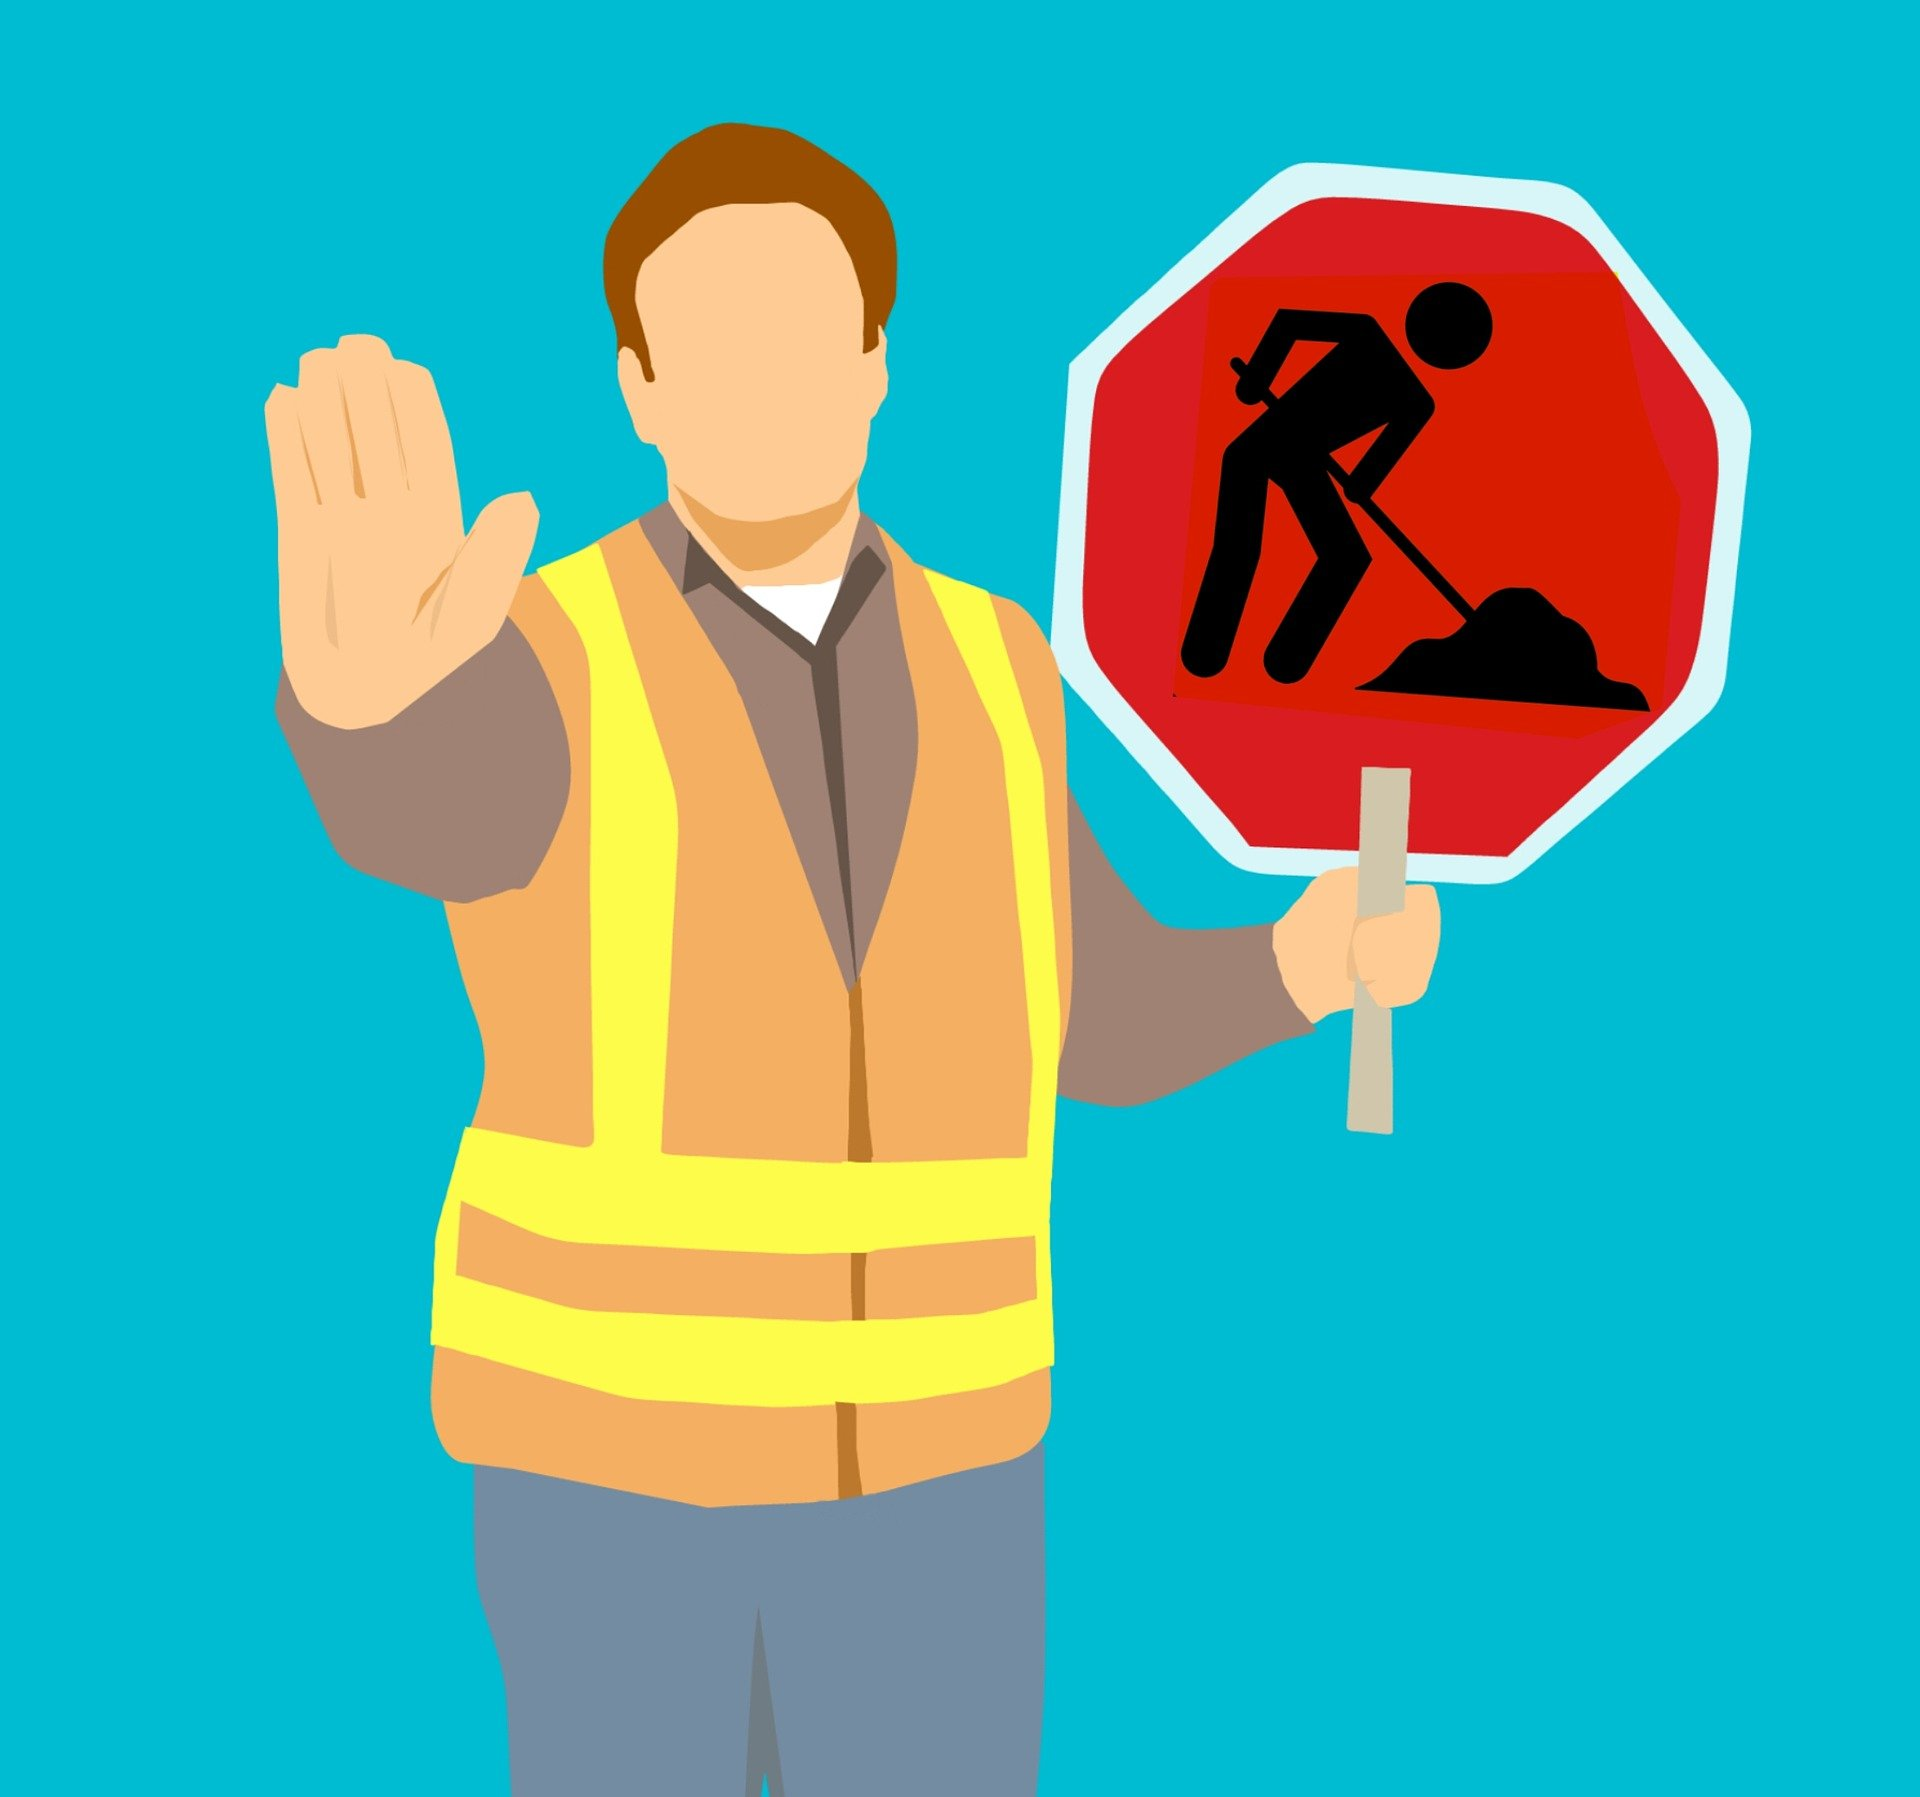 Person wearing a high-viz jacket with their hand in a stop motion, holding a 'men at work' sign